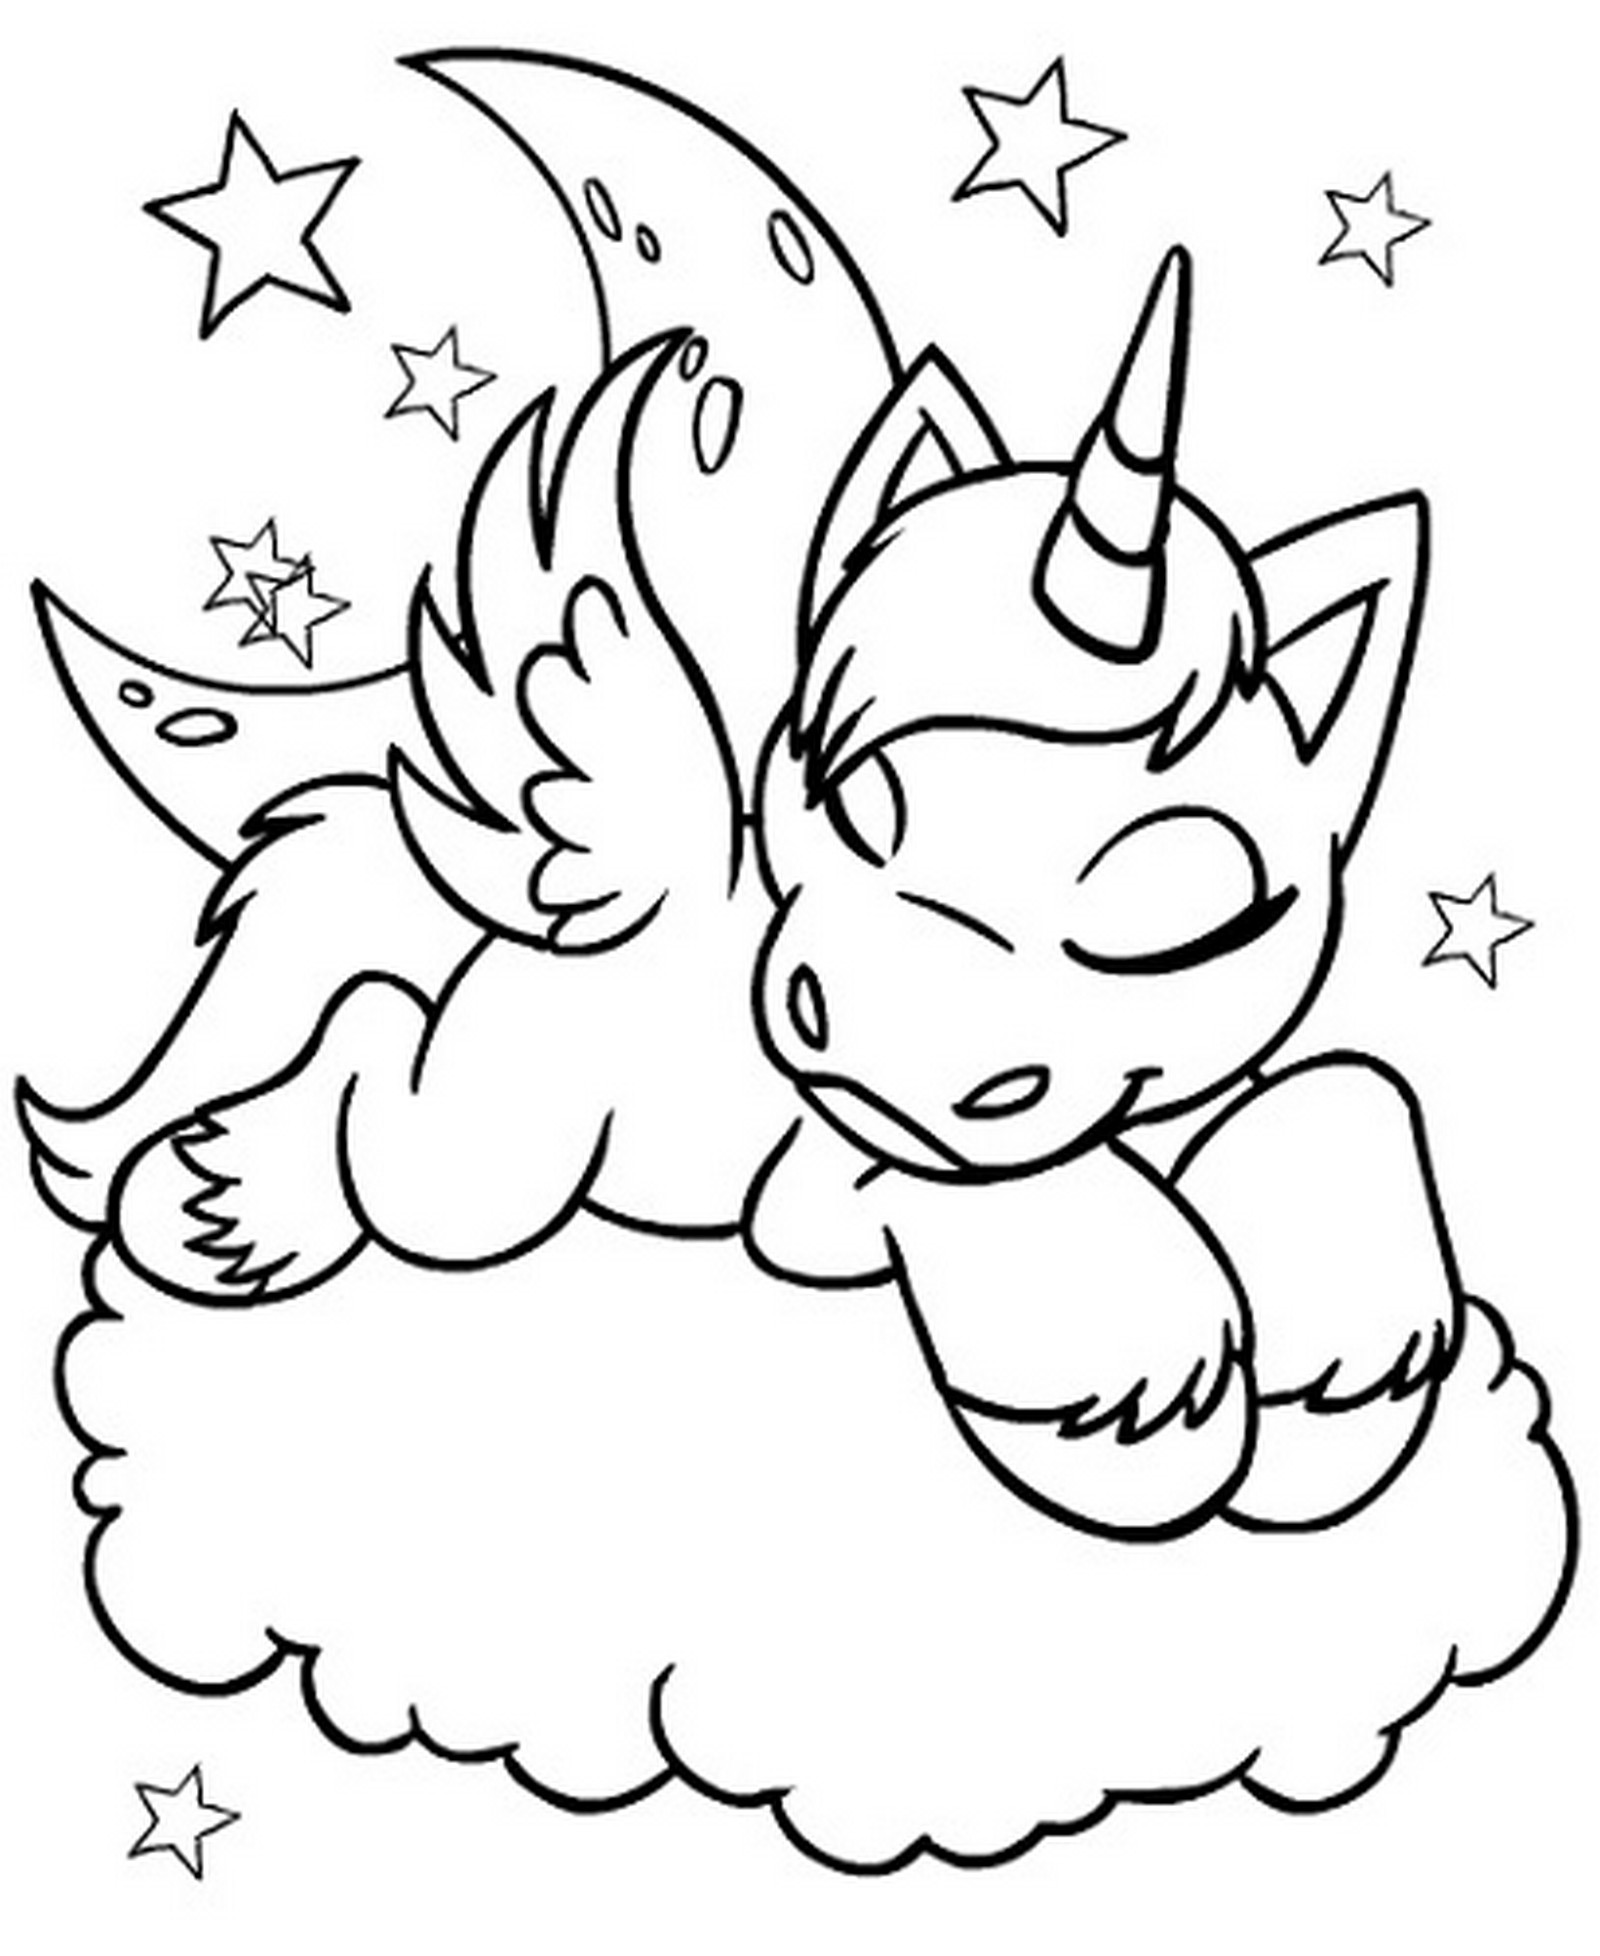 coloring unicorn colour adorable unicorn coloring pages for girls and adults updated colour unicorn coloring